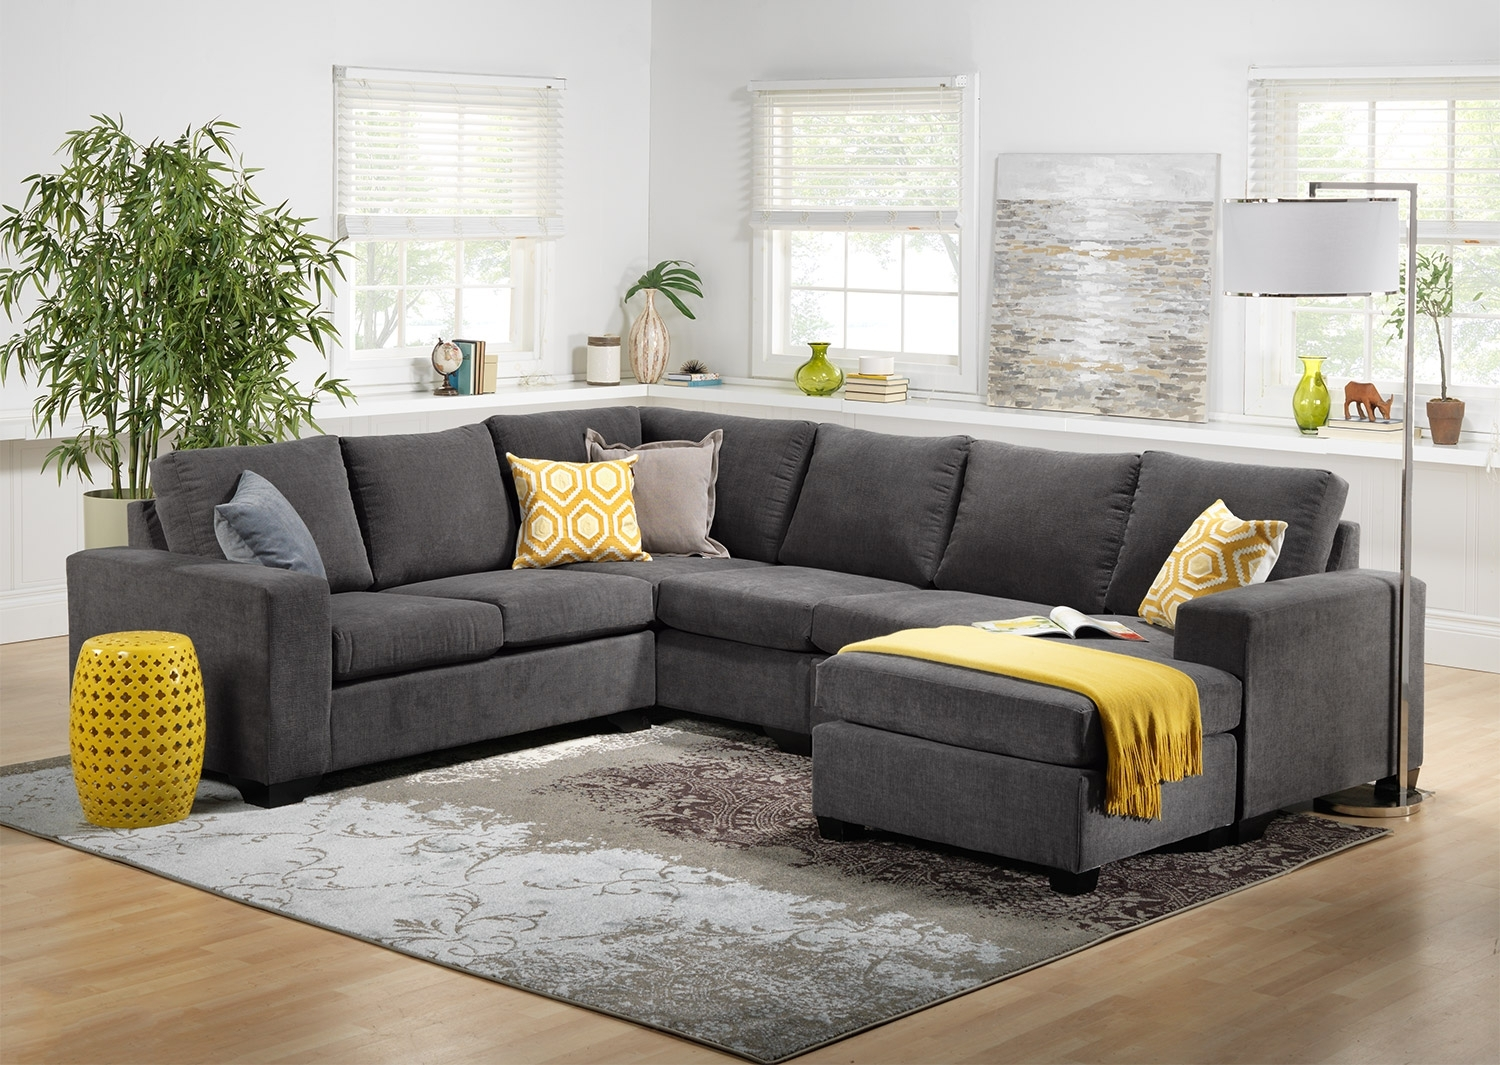 Used Sectional Sofas For Sale Edmonton Best Home Furniture Ideas For Ontario Canada Sectional Sofas (View 10 of 10)